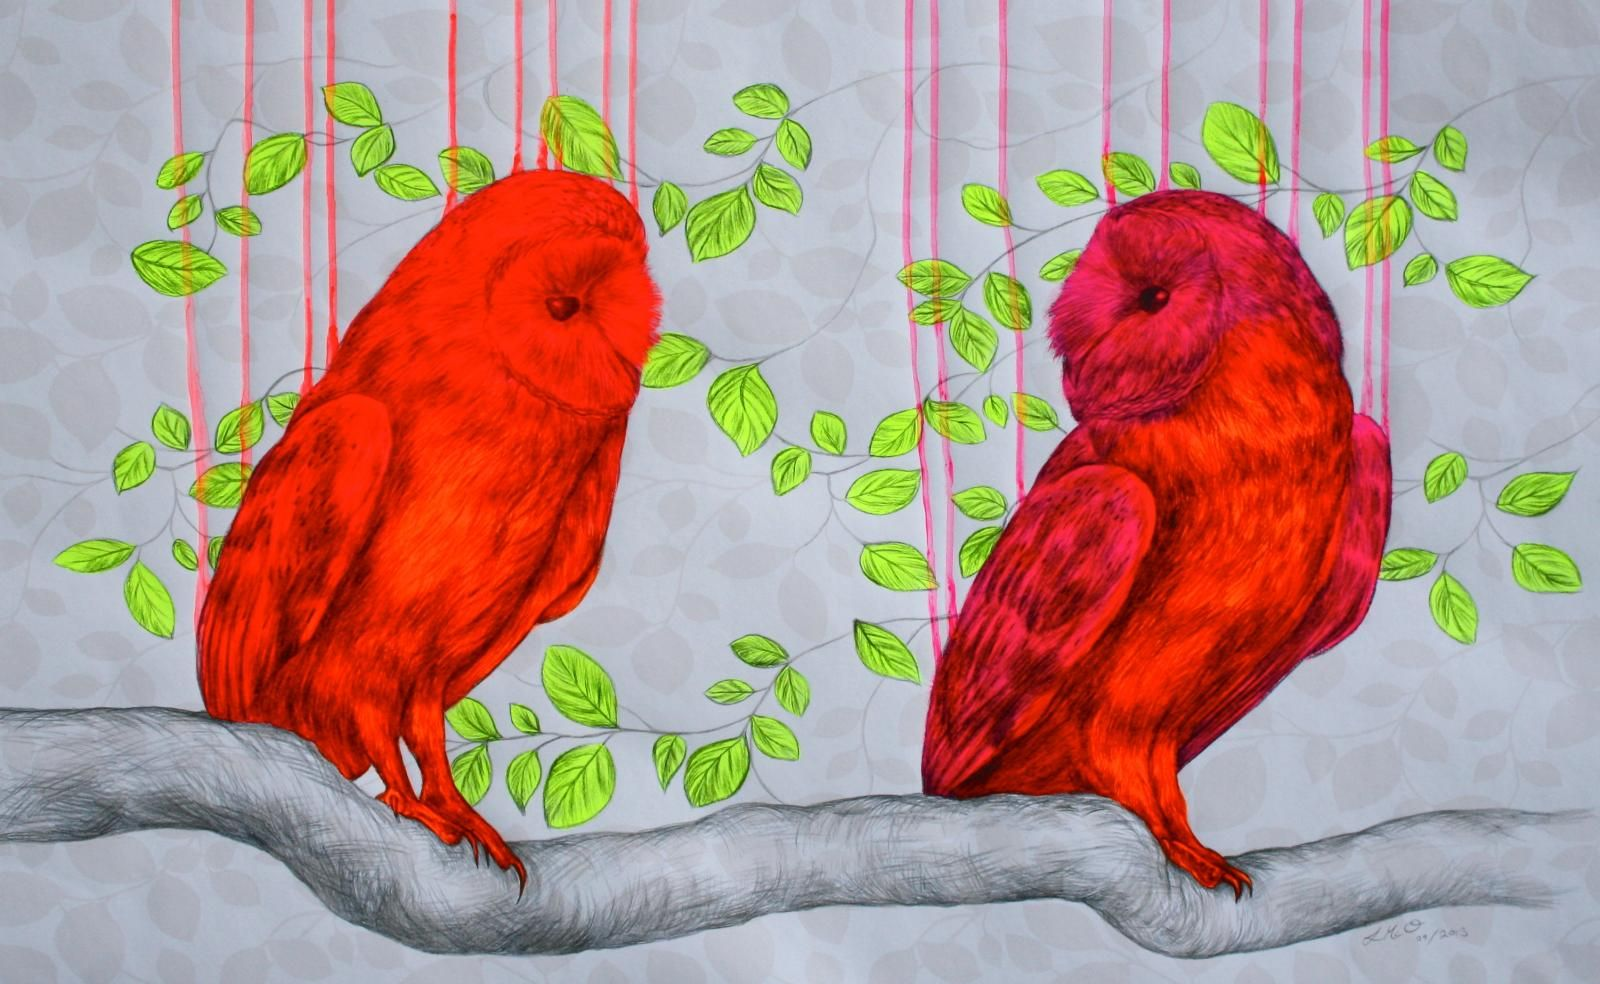 Wild Attraction by Louise McNaught http://www.degreeart.com/animal-drawing/louise-mcnaught/wild-attraction